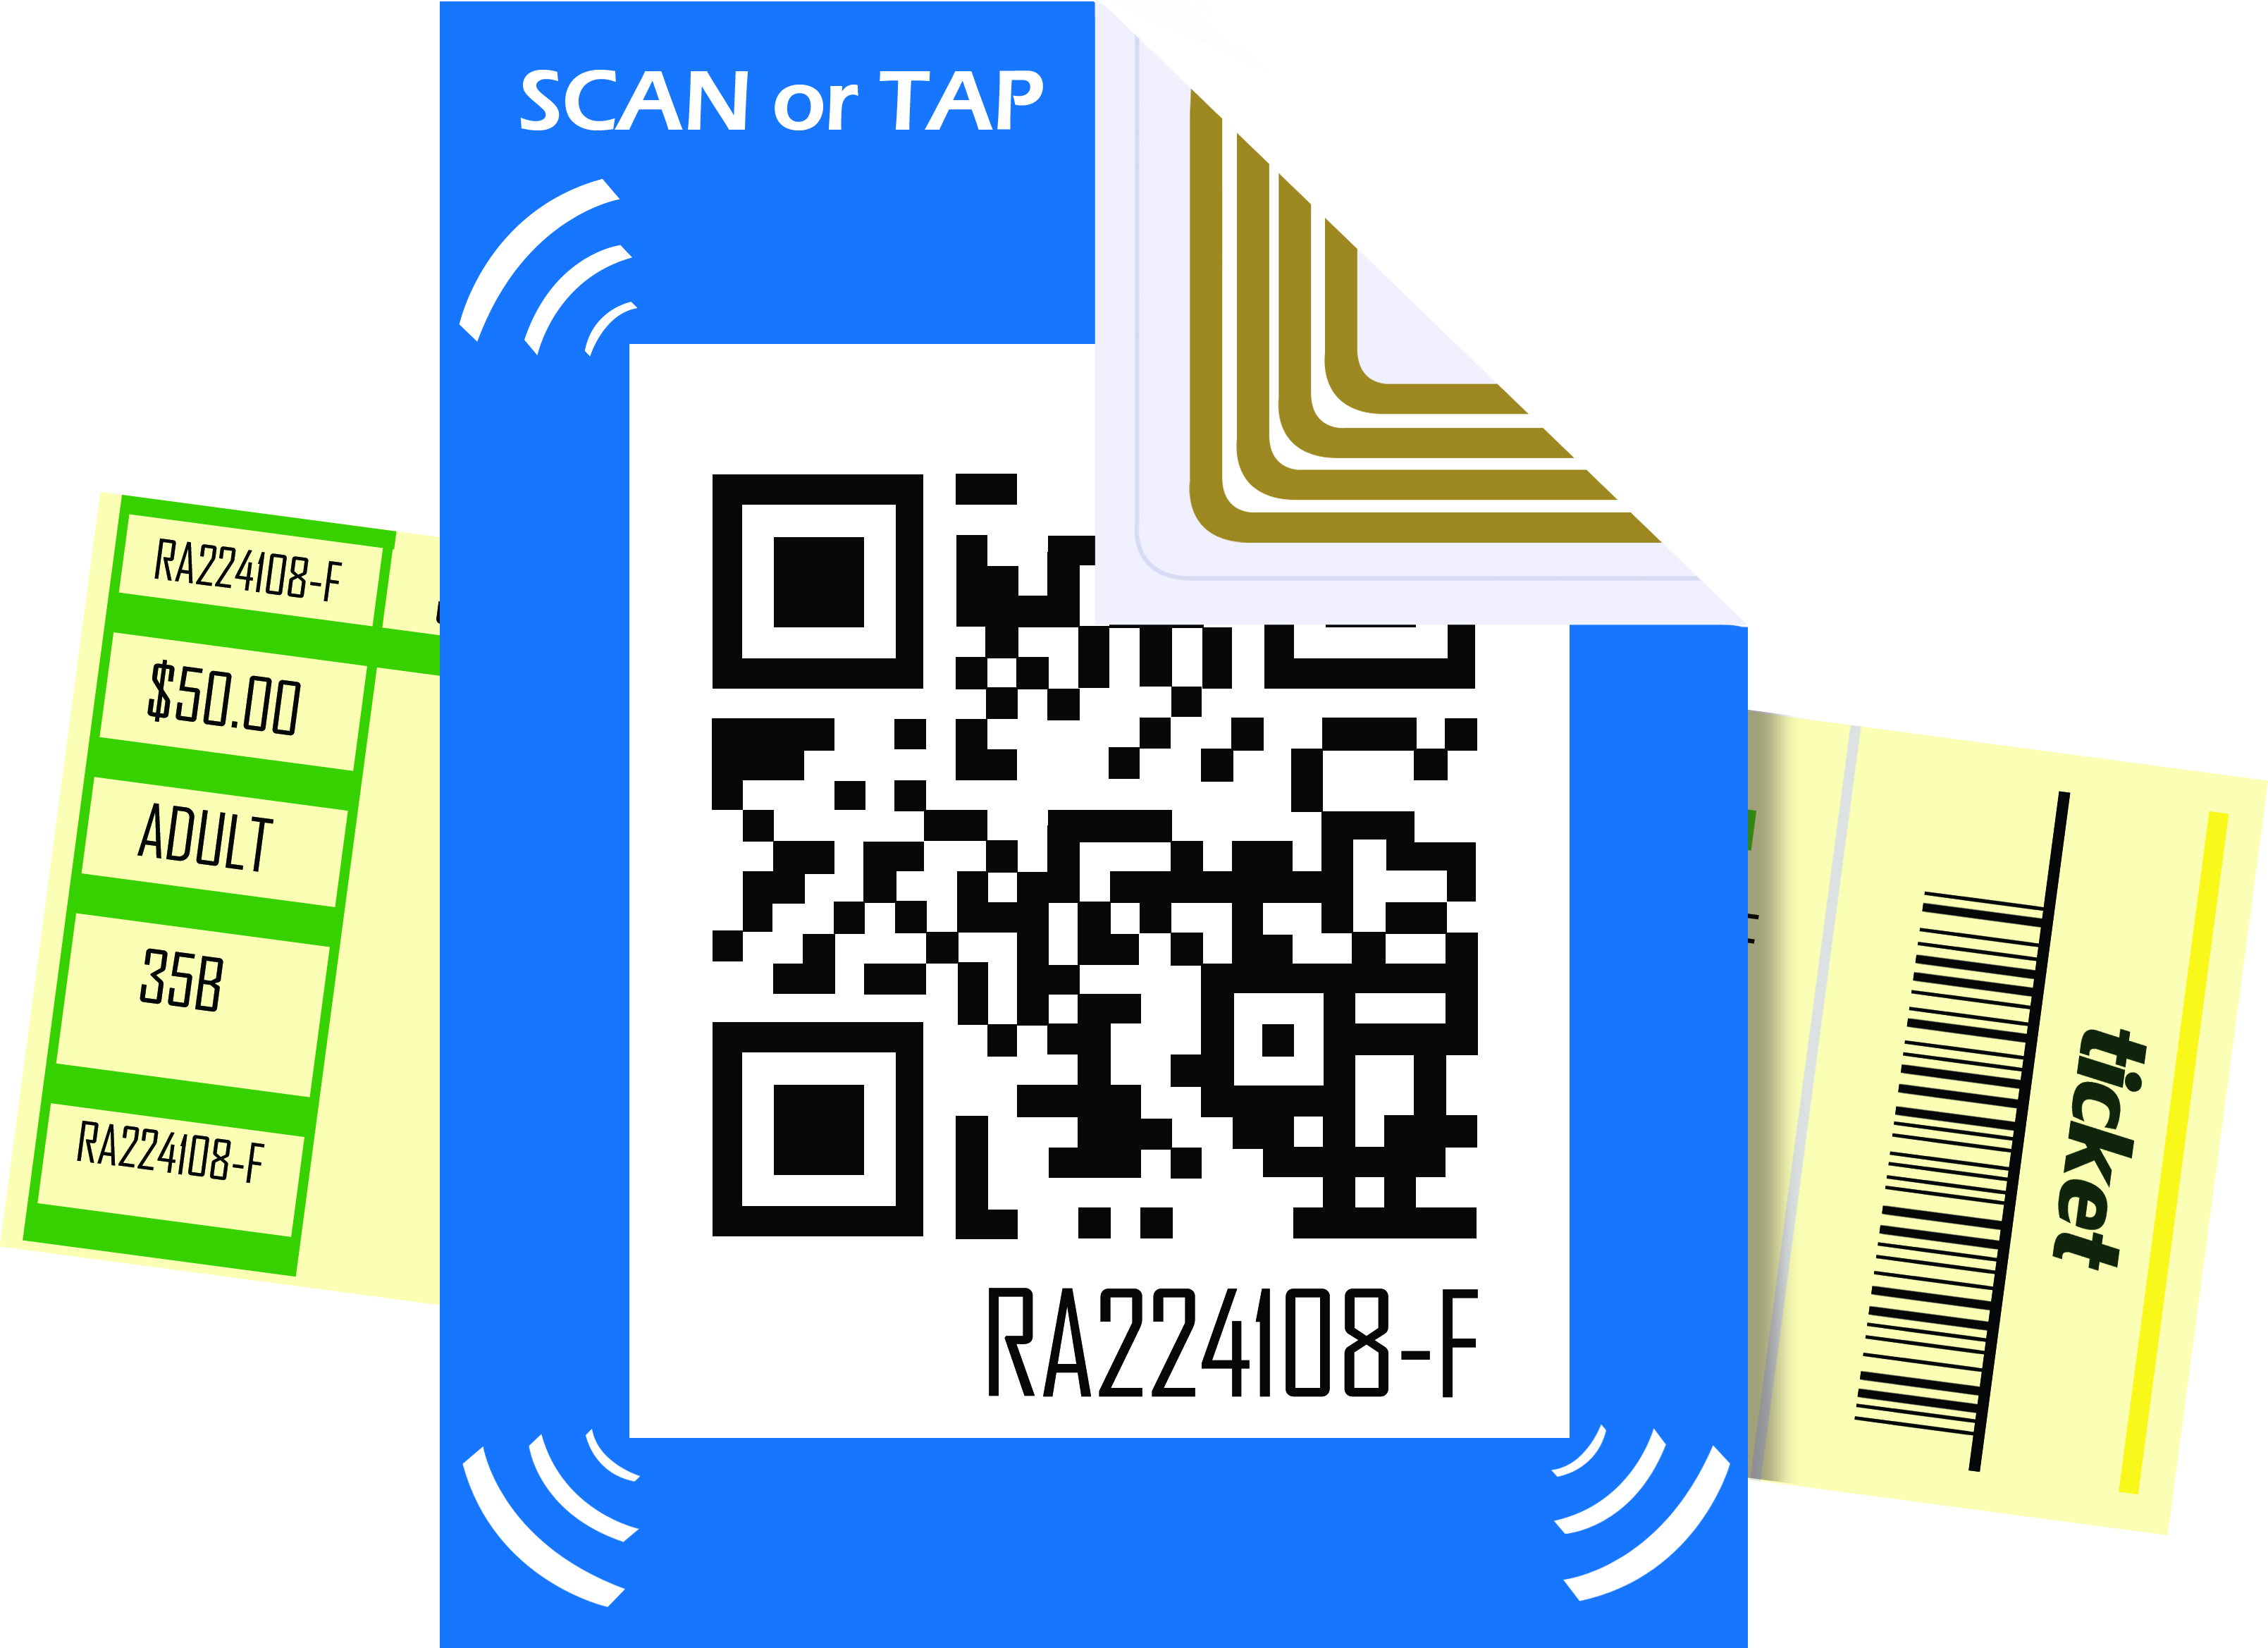 Nfc Tag News Scan With Barcode Scanner